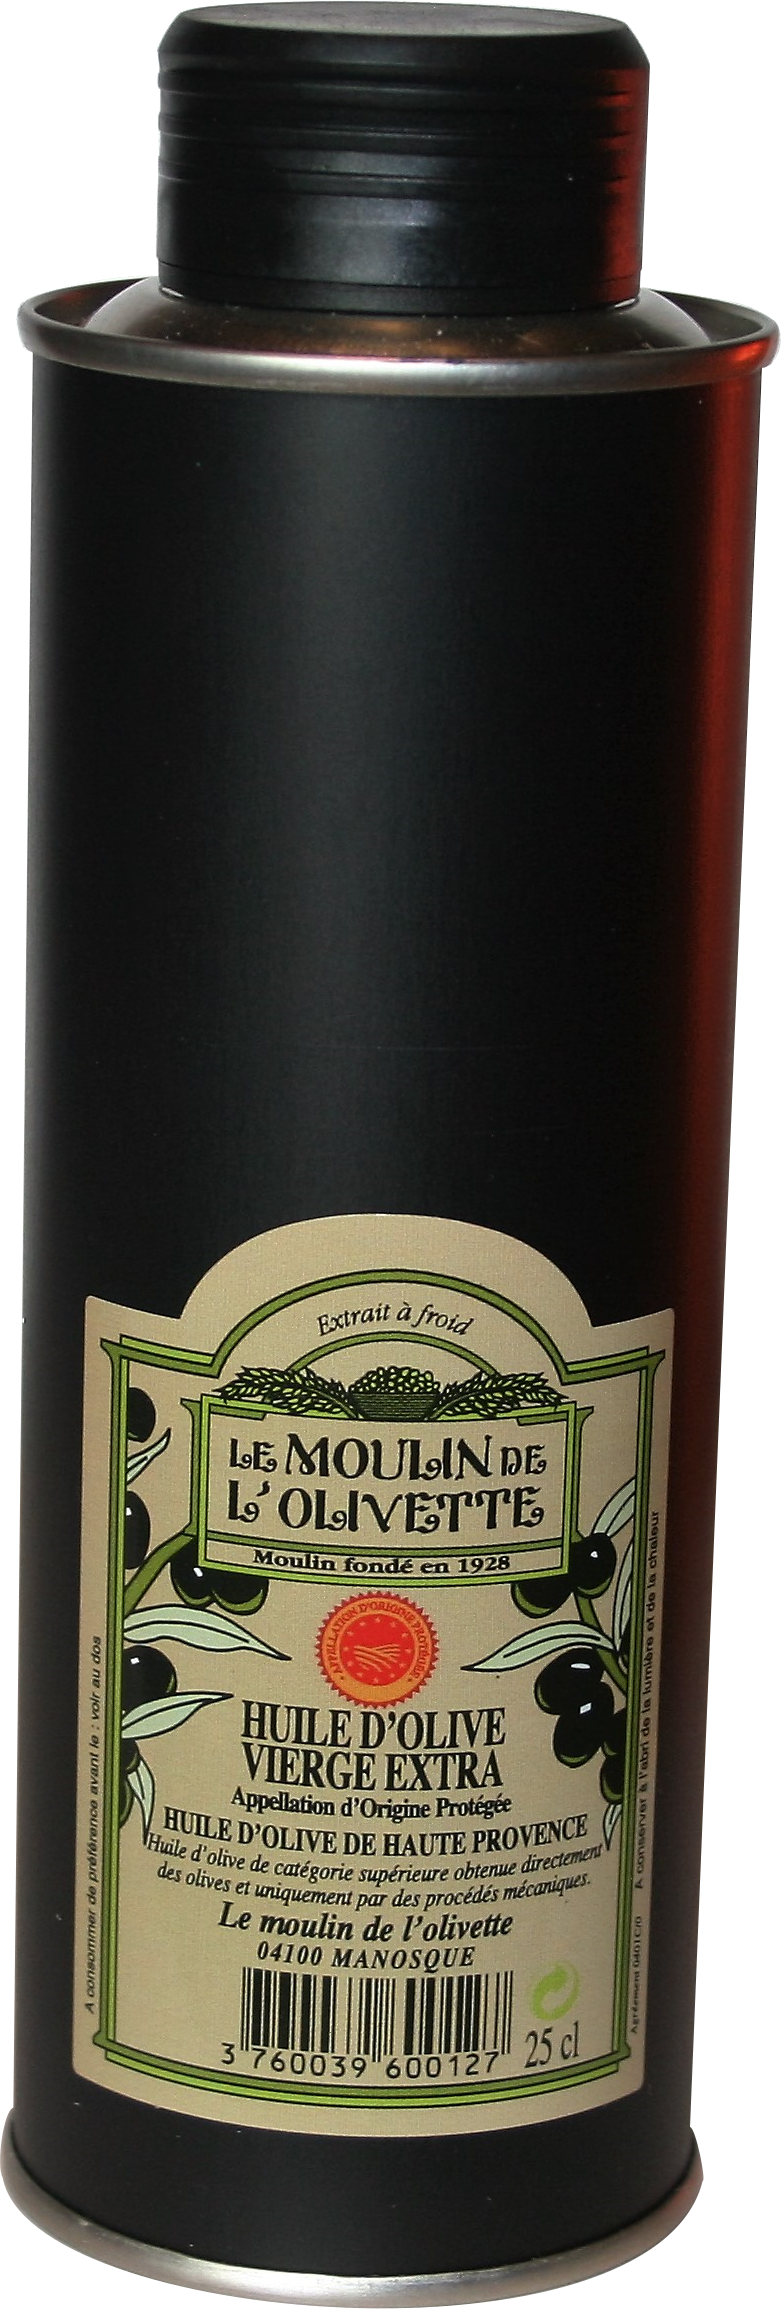 huile olive manosque